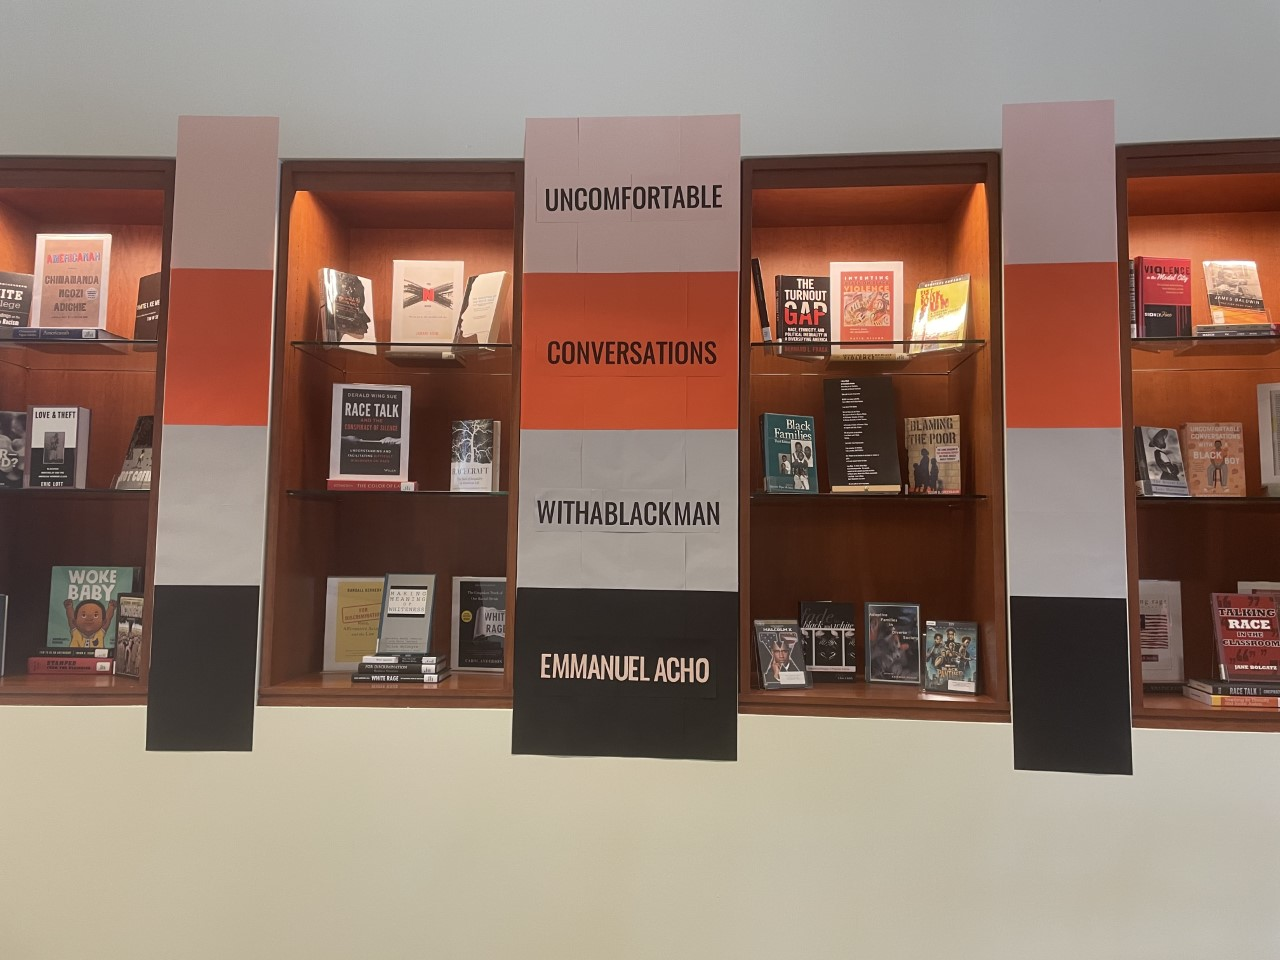 Photograph of the Display in the Library